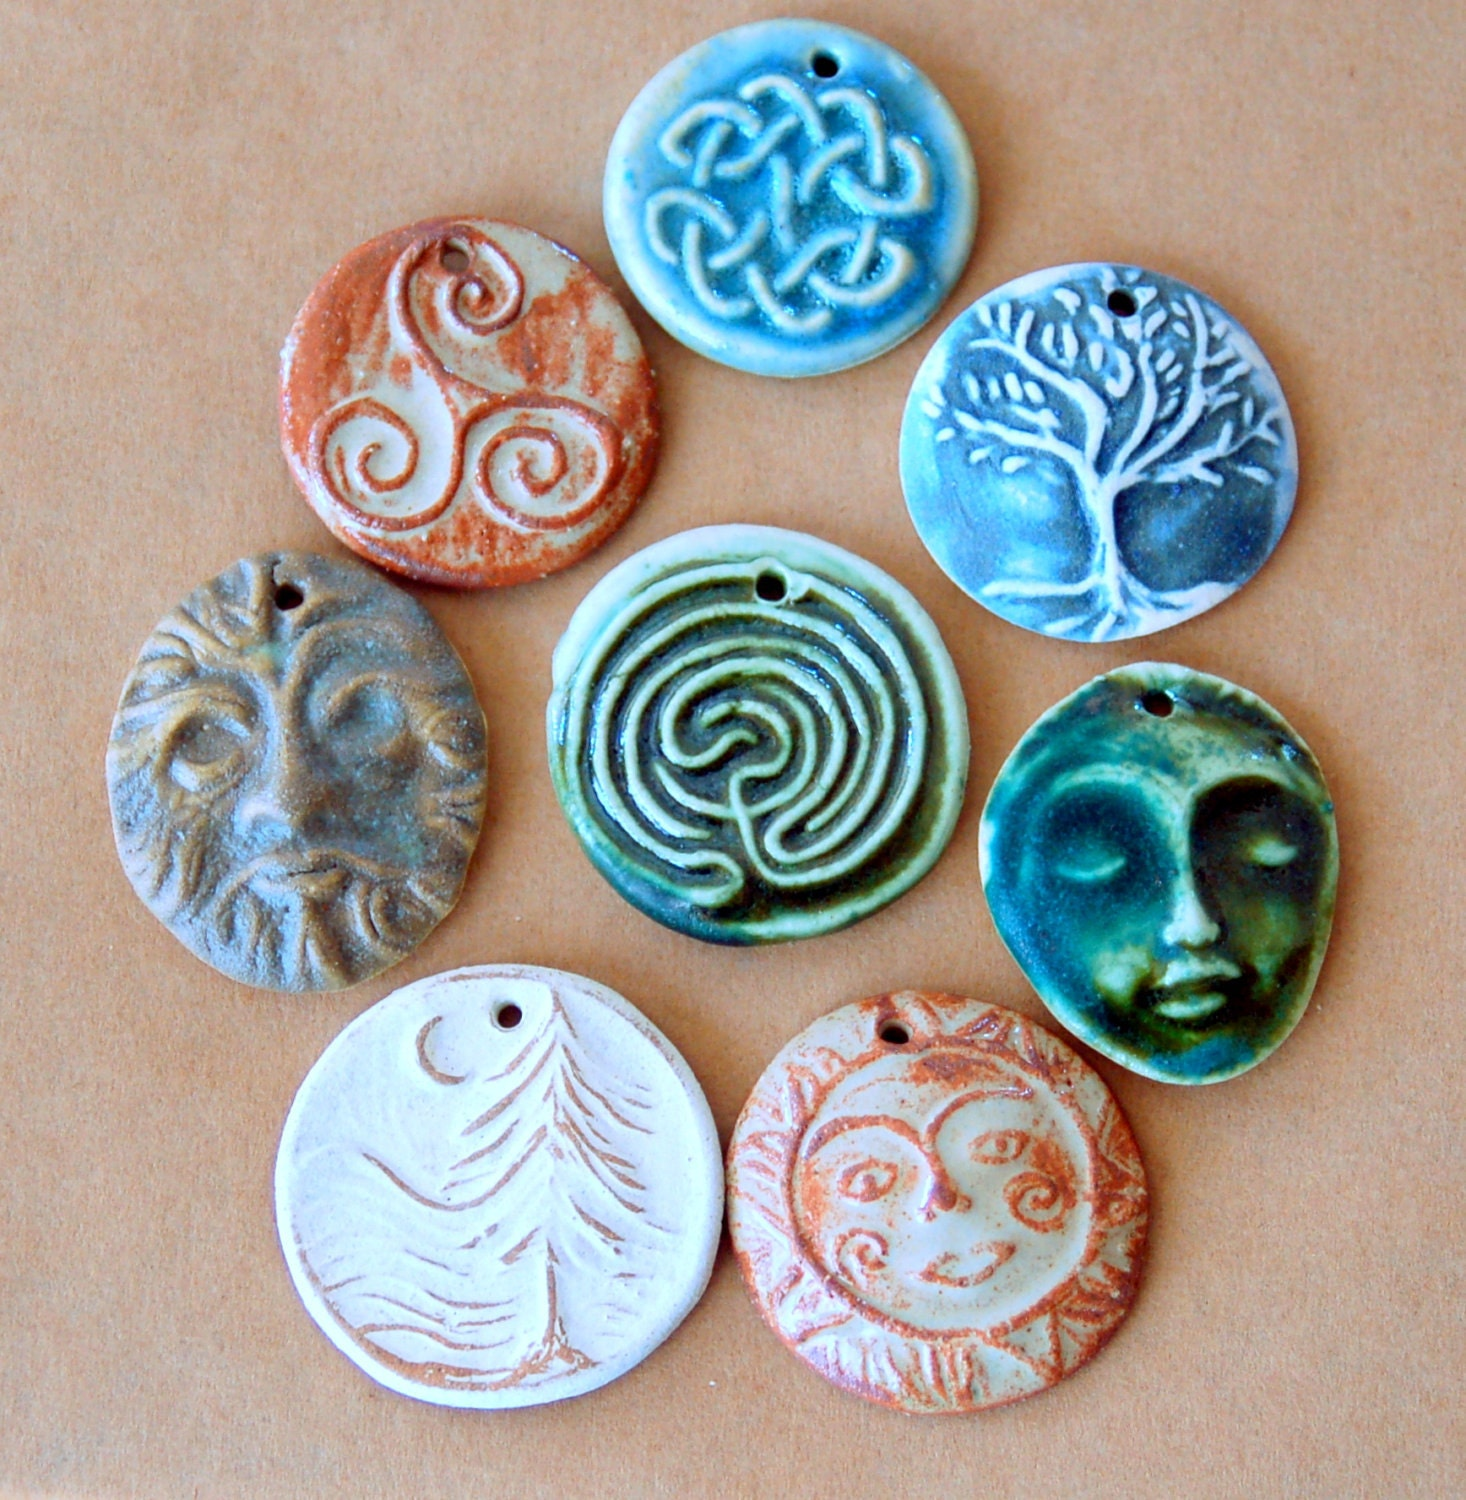 8 handmade ceramic mystical pendant assortment for